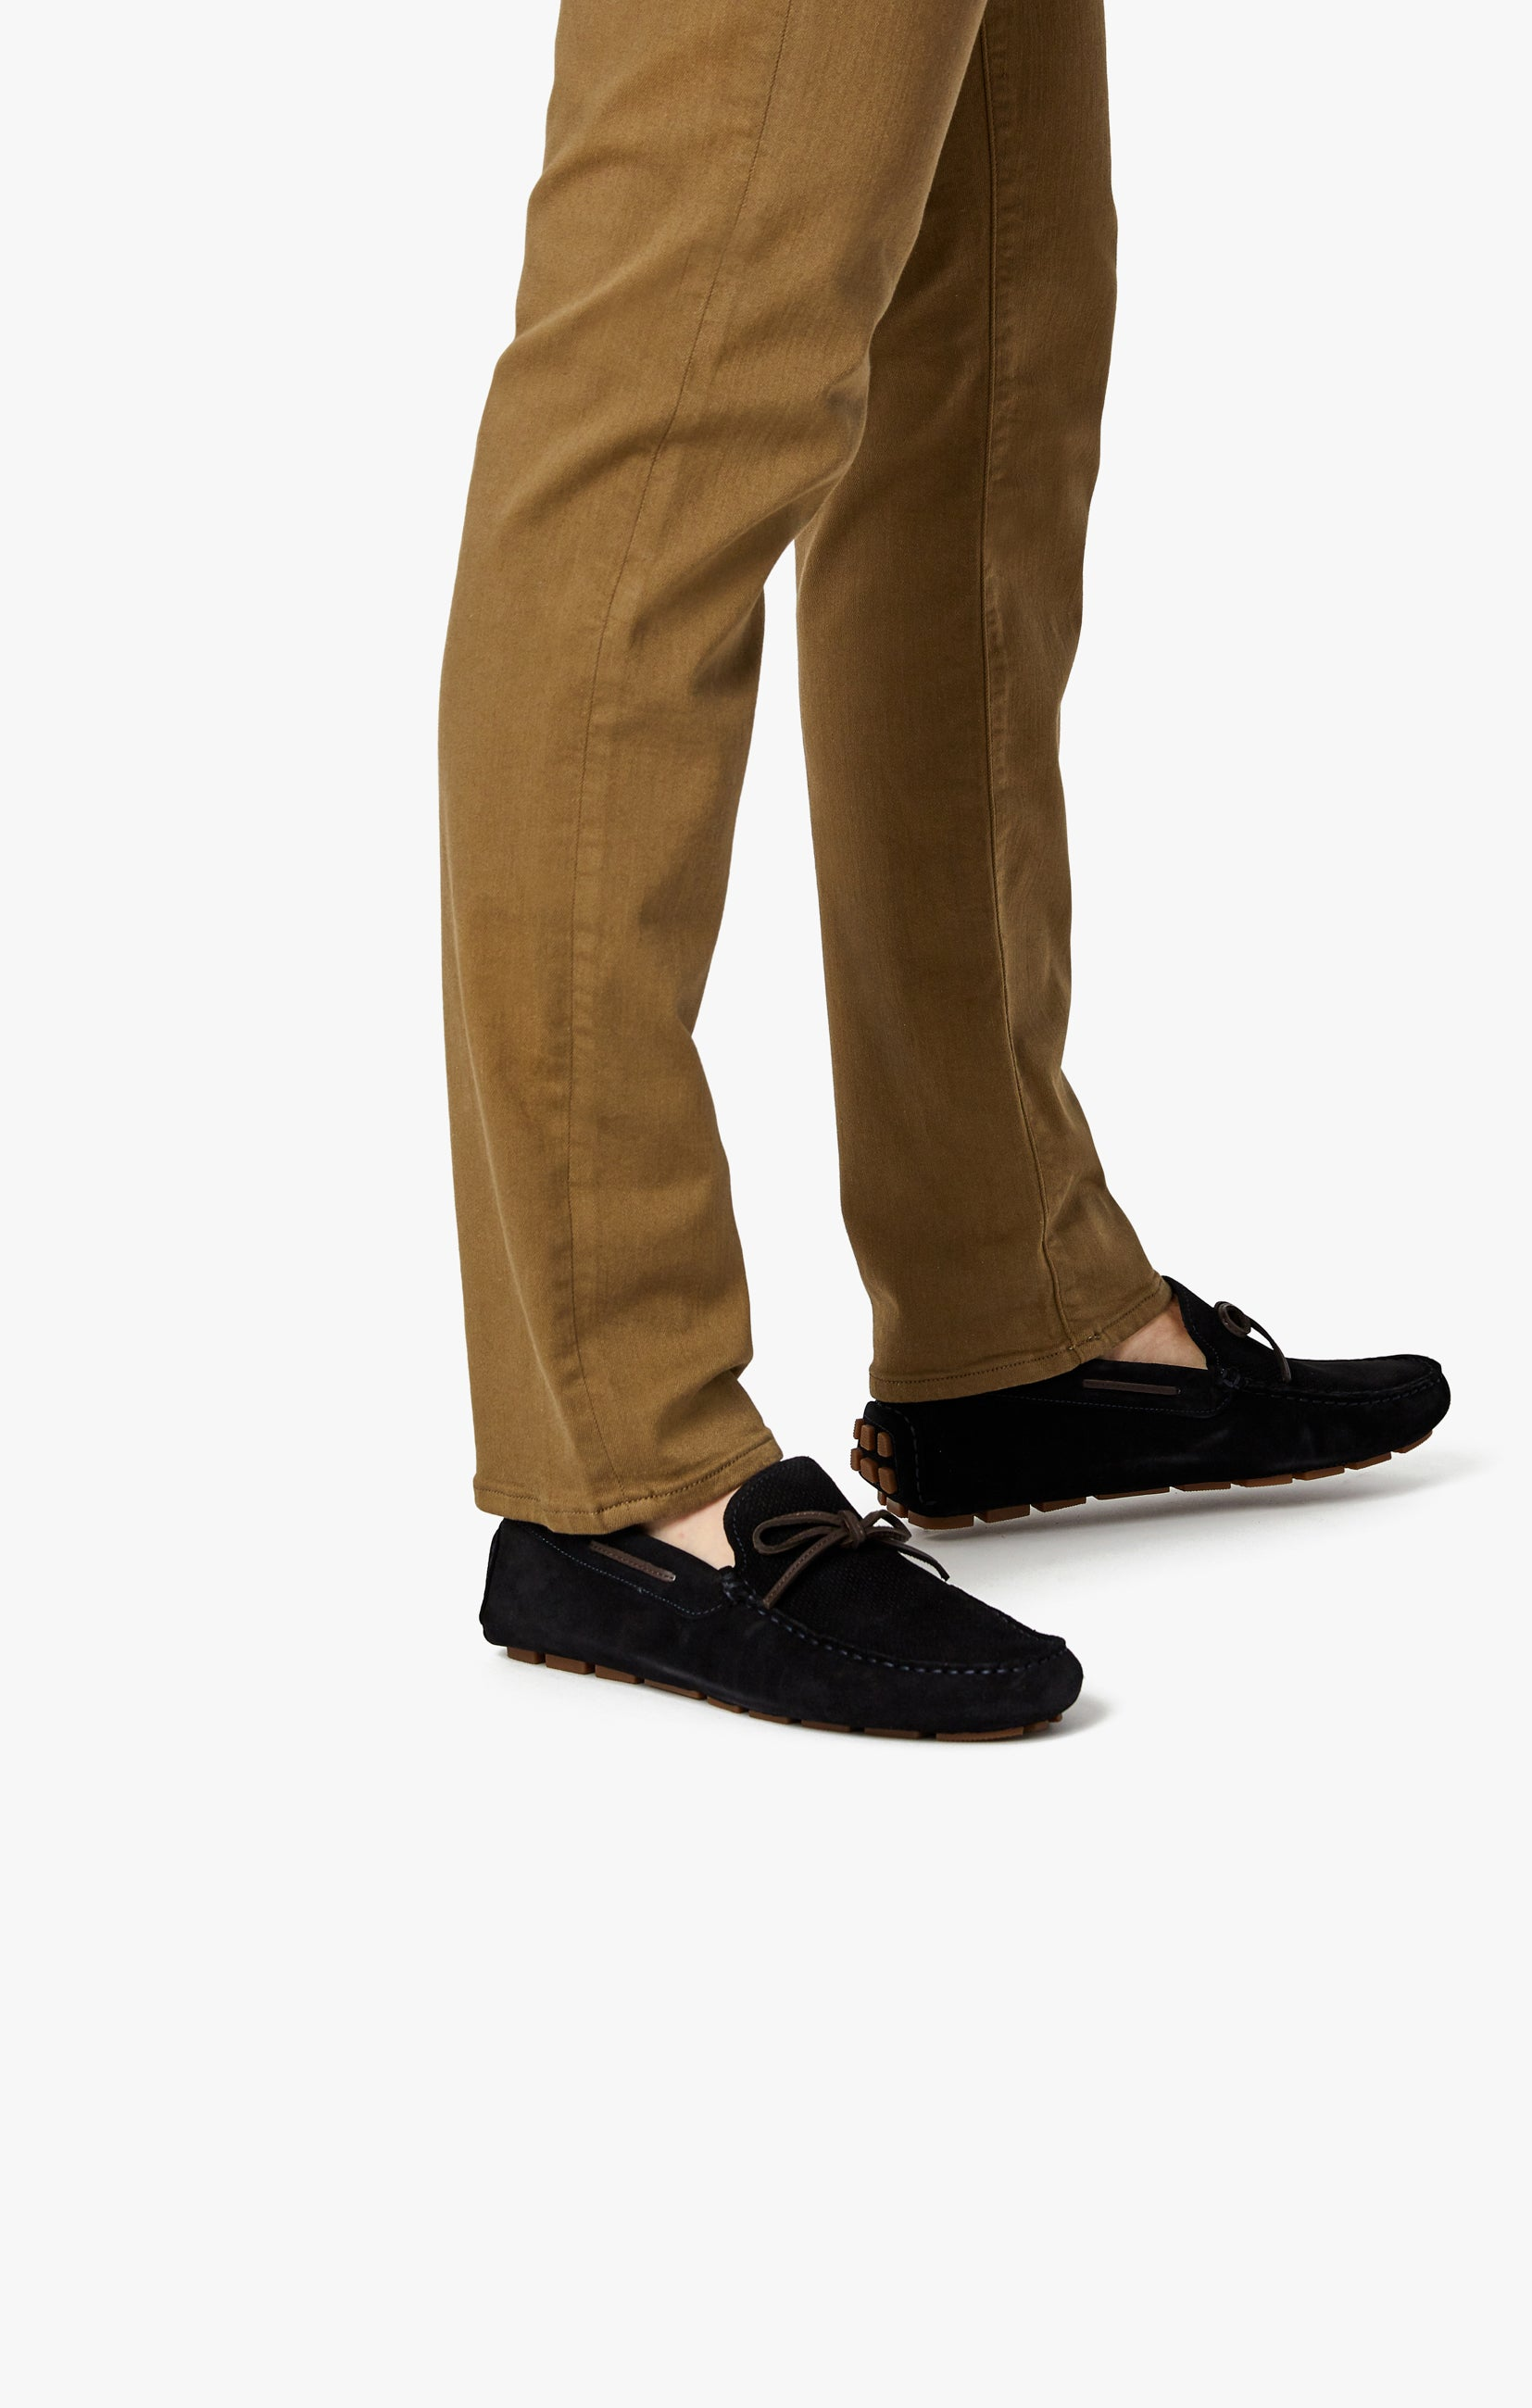 Cool Tapered Leg Pants In Tobacco Comfort Image 12